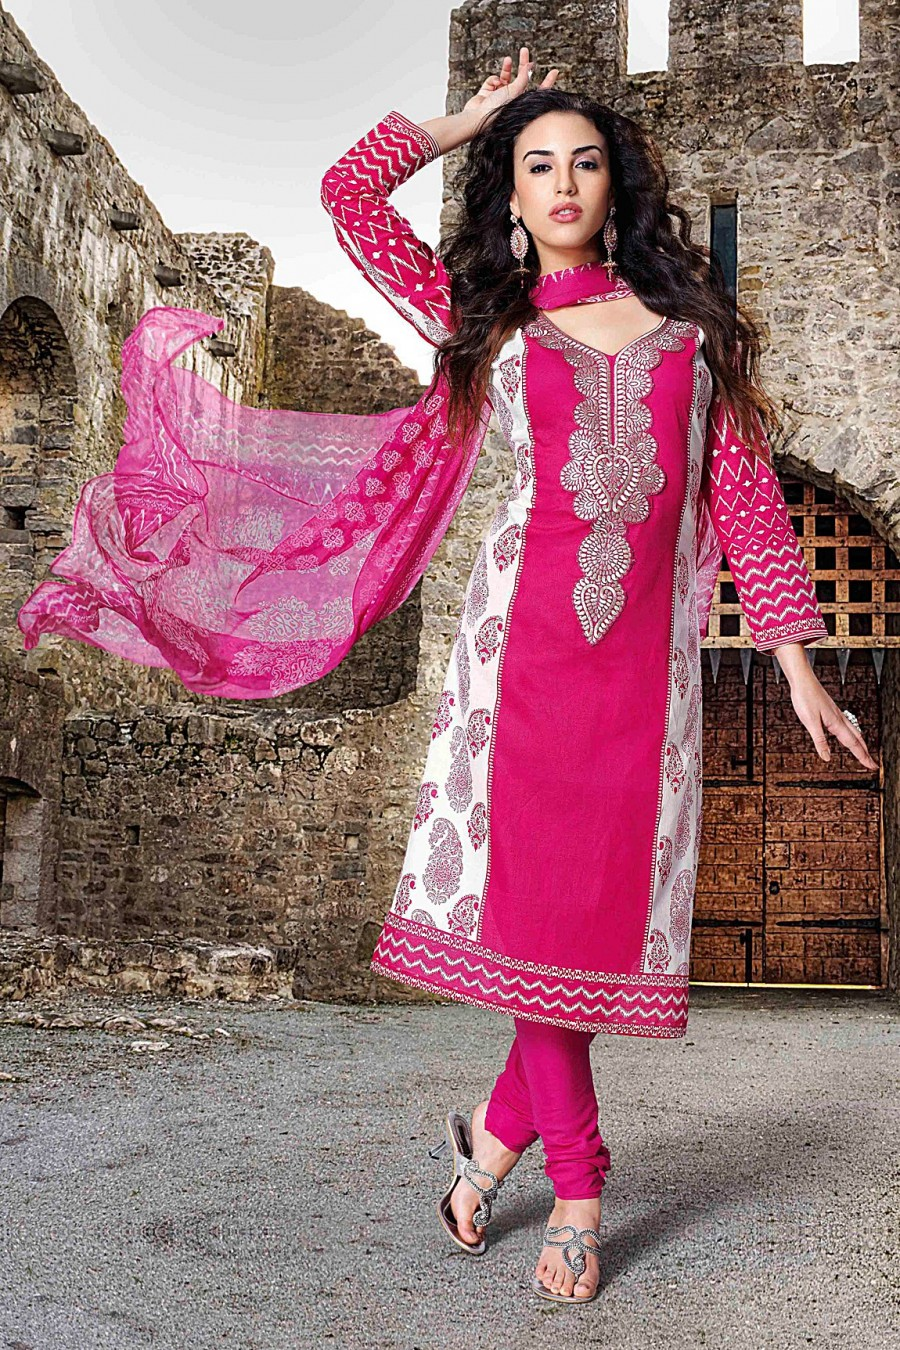 Buy Pink and White Cambric Salwar Kameez with Pink Printed Dupatta Online